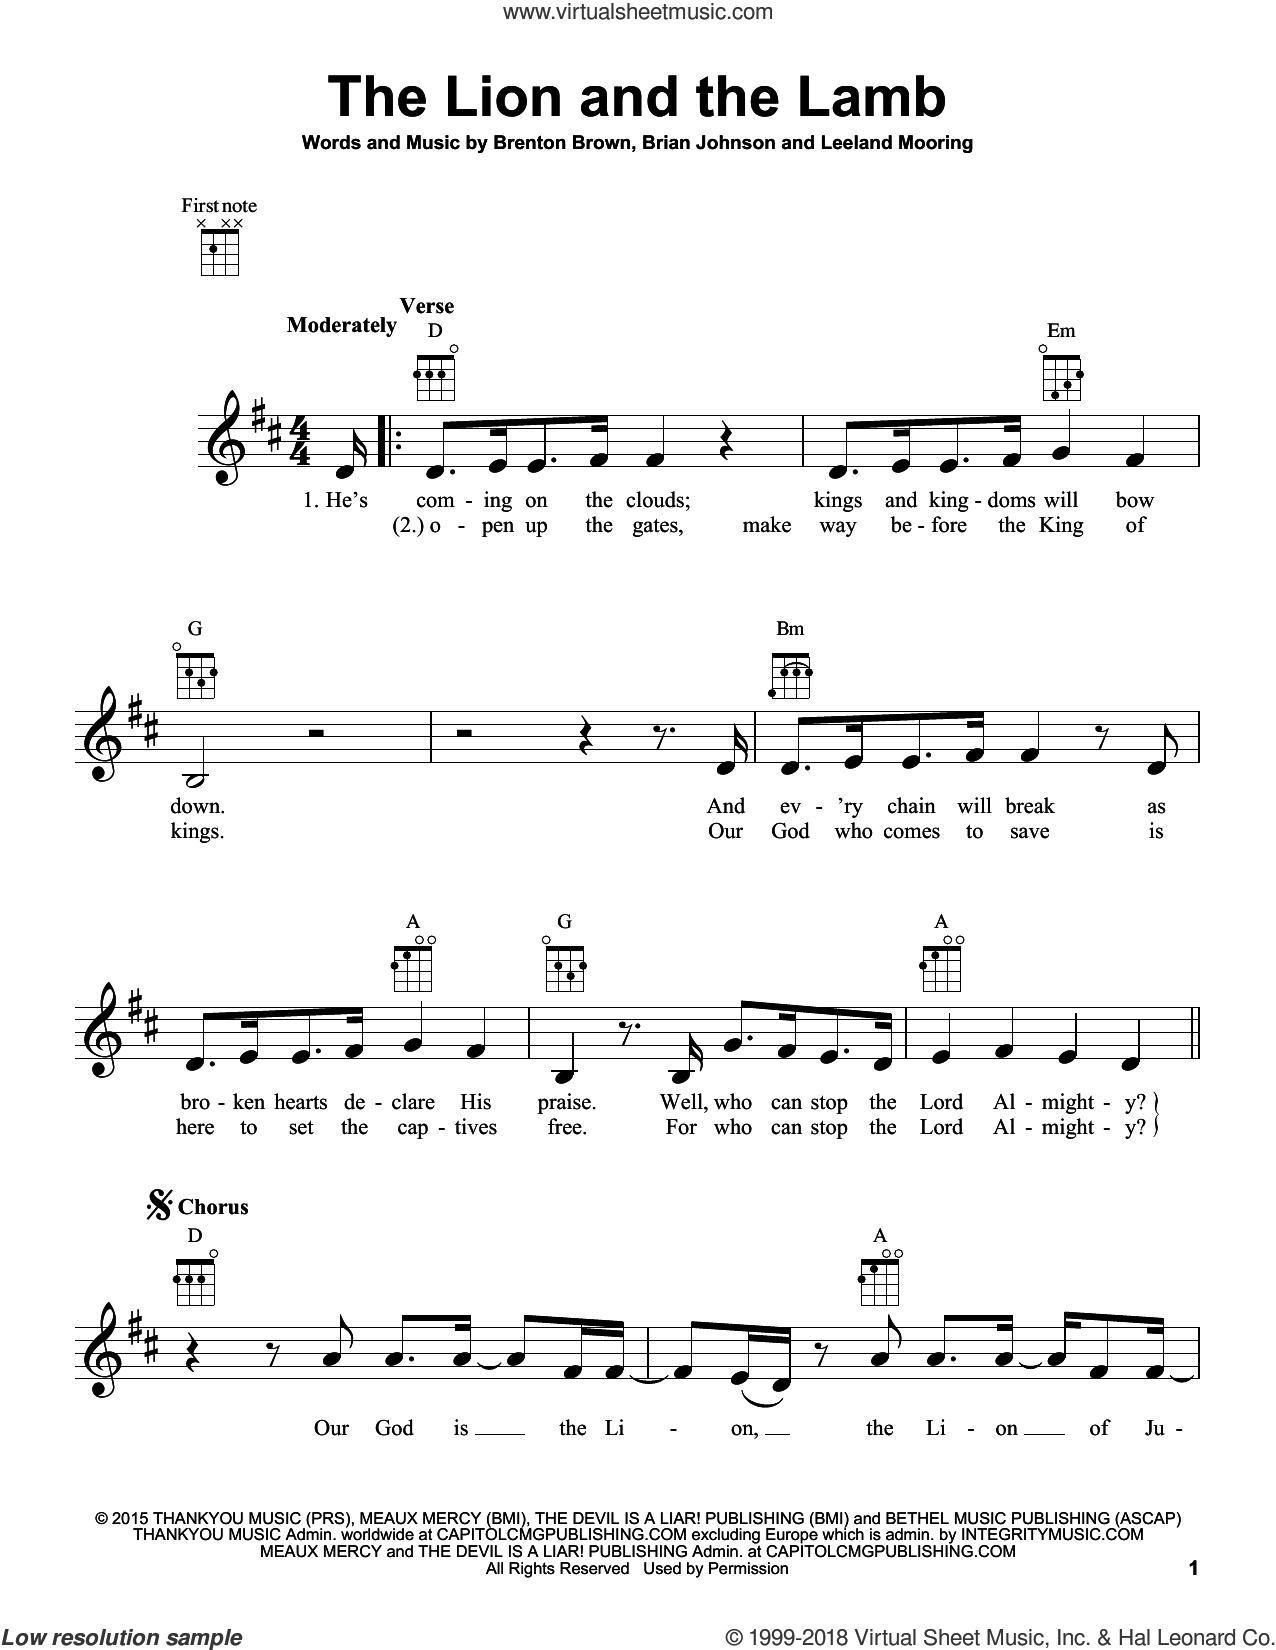 The Lion And The Lamb sheet music for ukulele by Big Daddy Weave, Brenton Brown, Brian Johnson and Leeland Mooring, intermediate skill level